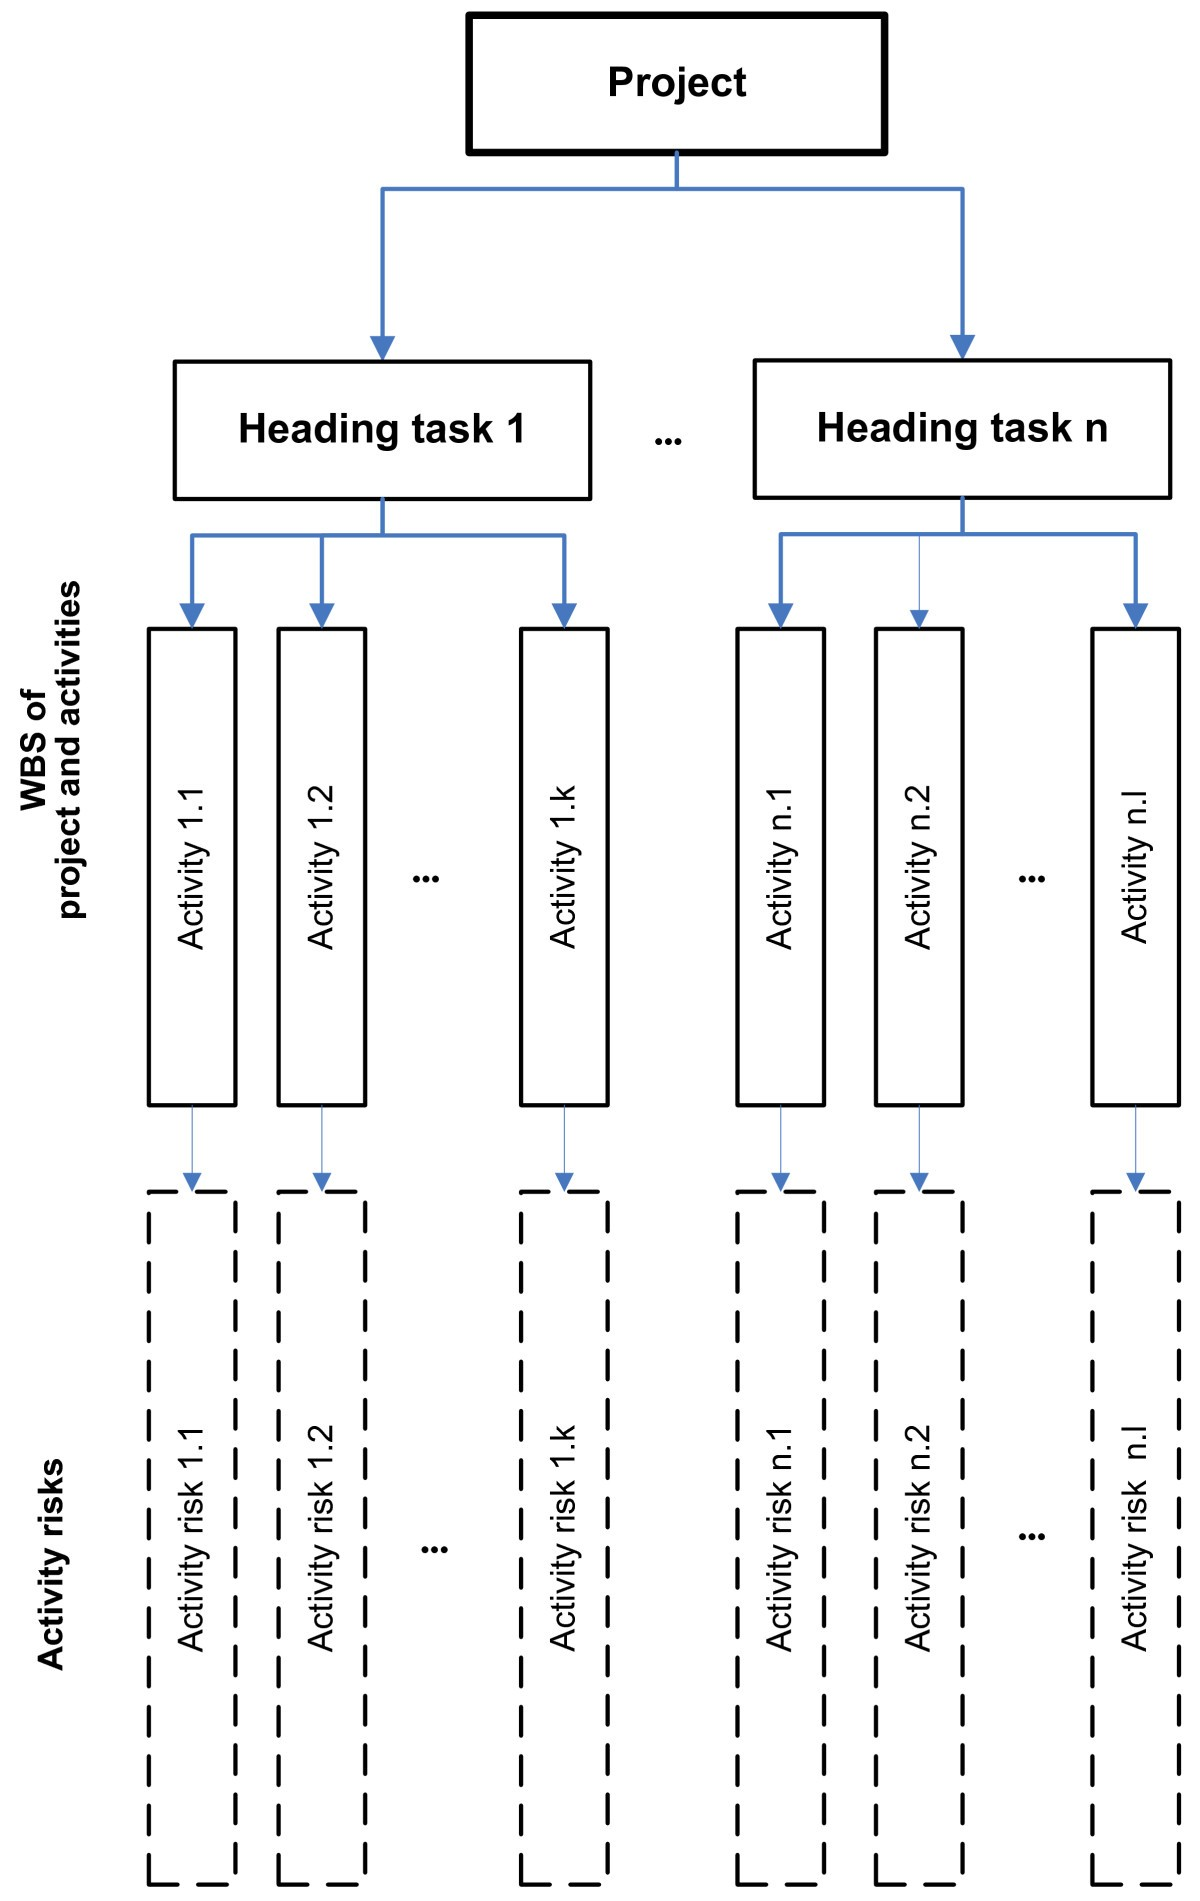 Extended Risk Analysis Model For Activities Of The Project